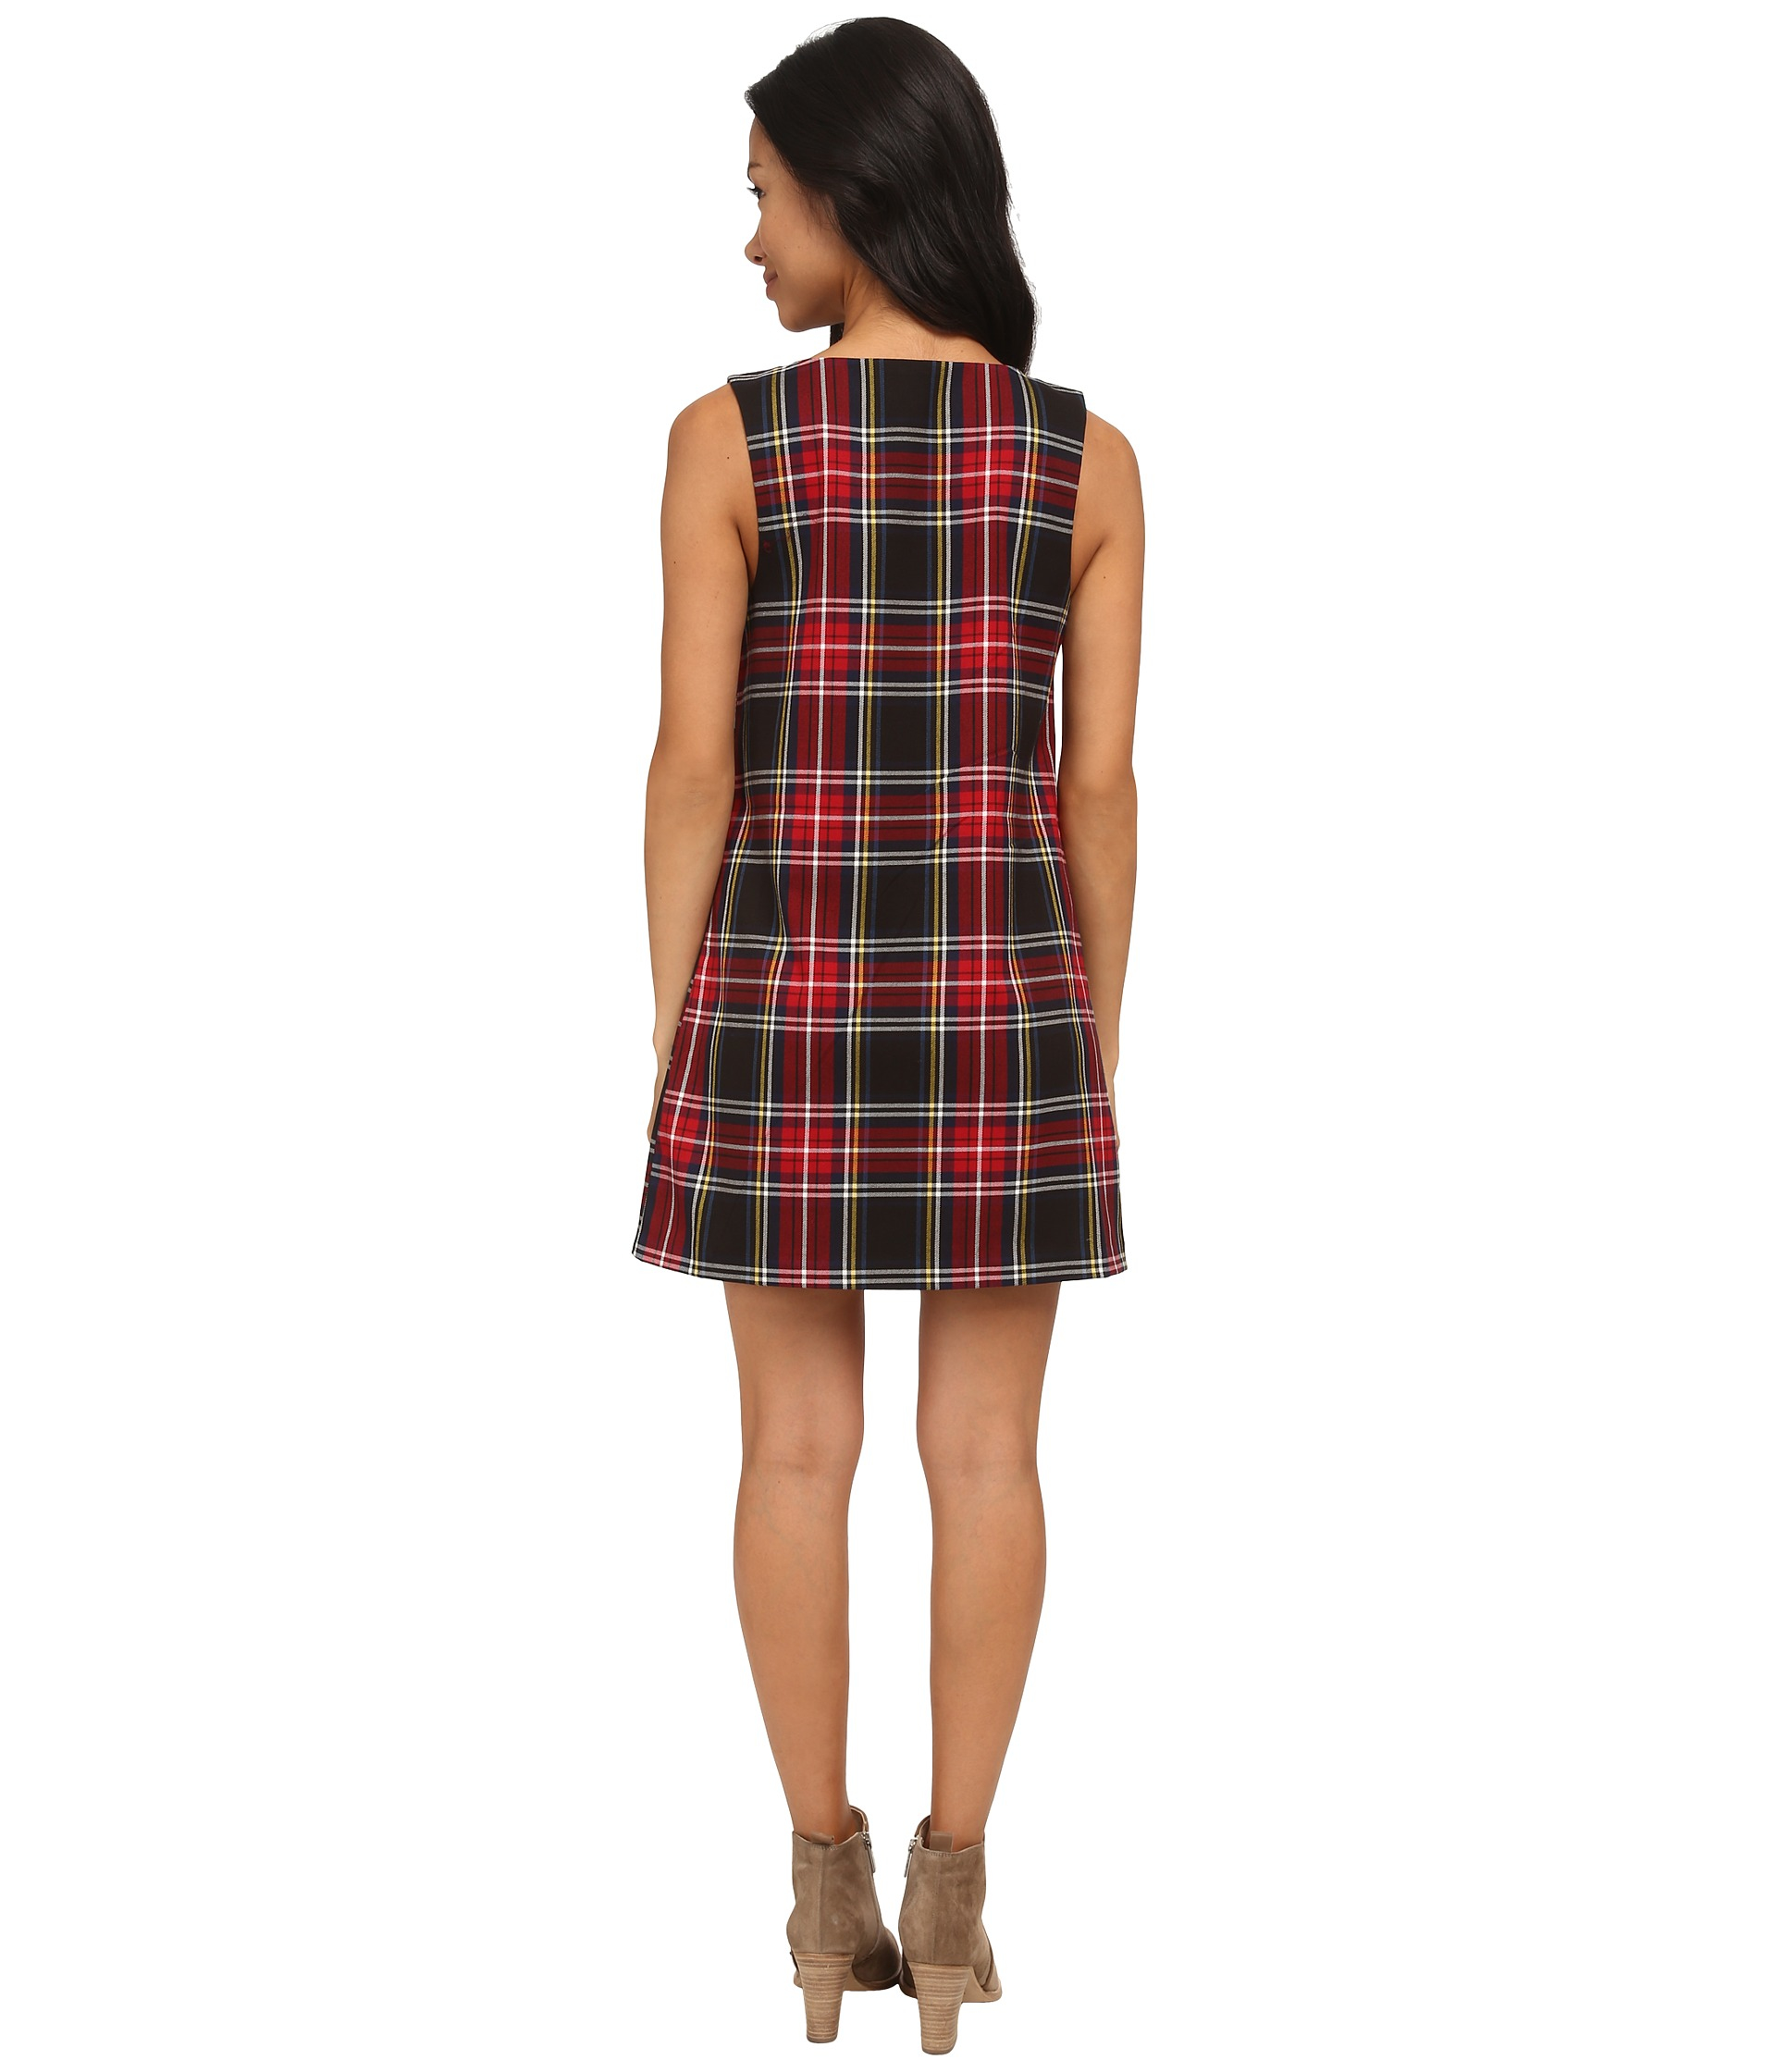 65f5c80602f Gallery. Previously sold at  Zappos · Women s Tartan Dresses ...